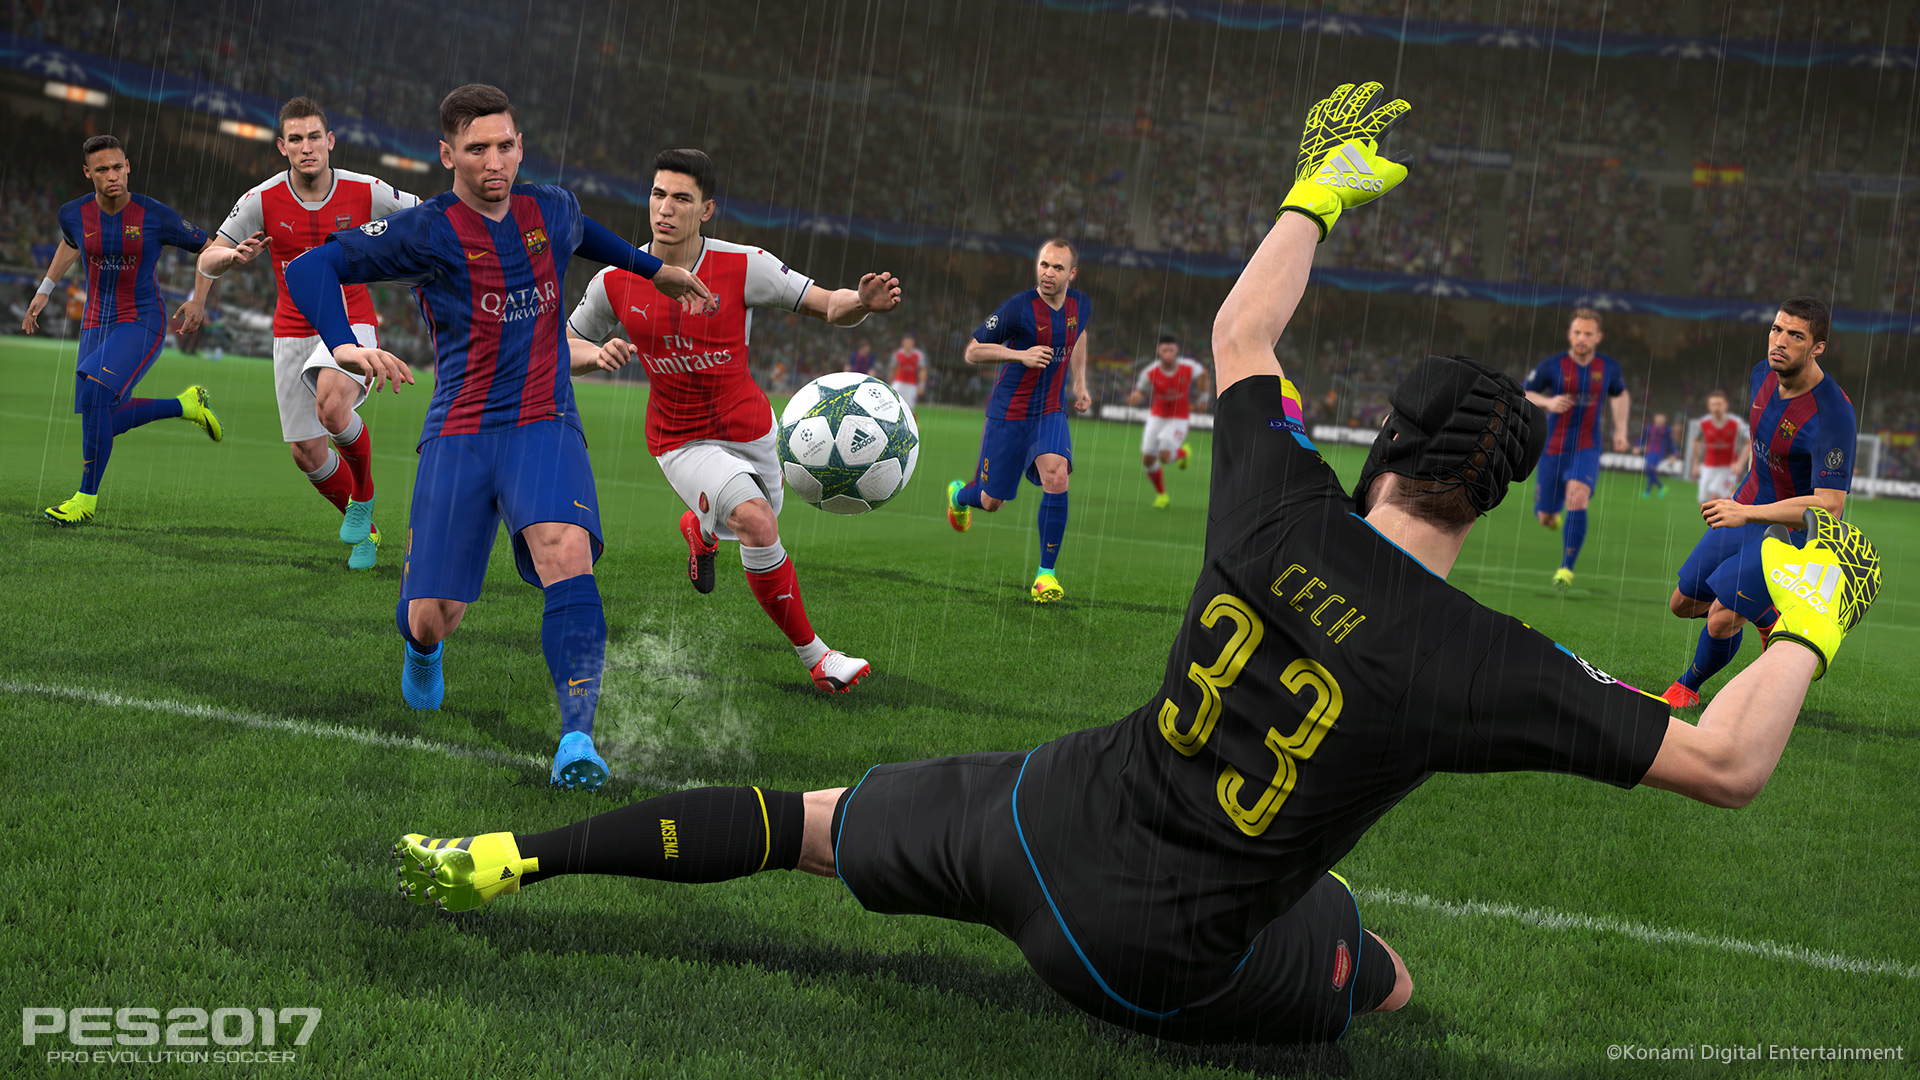 pes-2017-arsenal-barcellona-messi